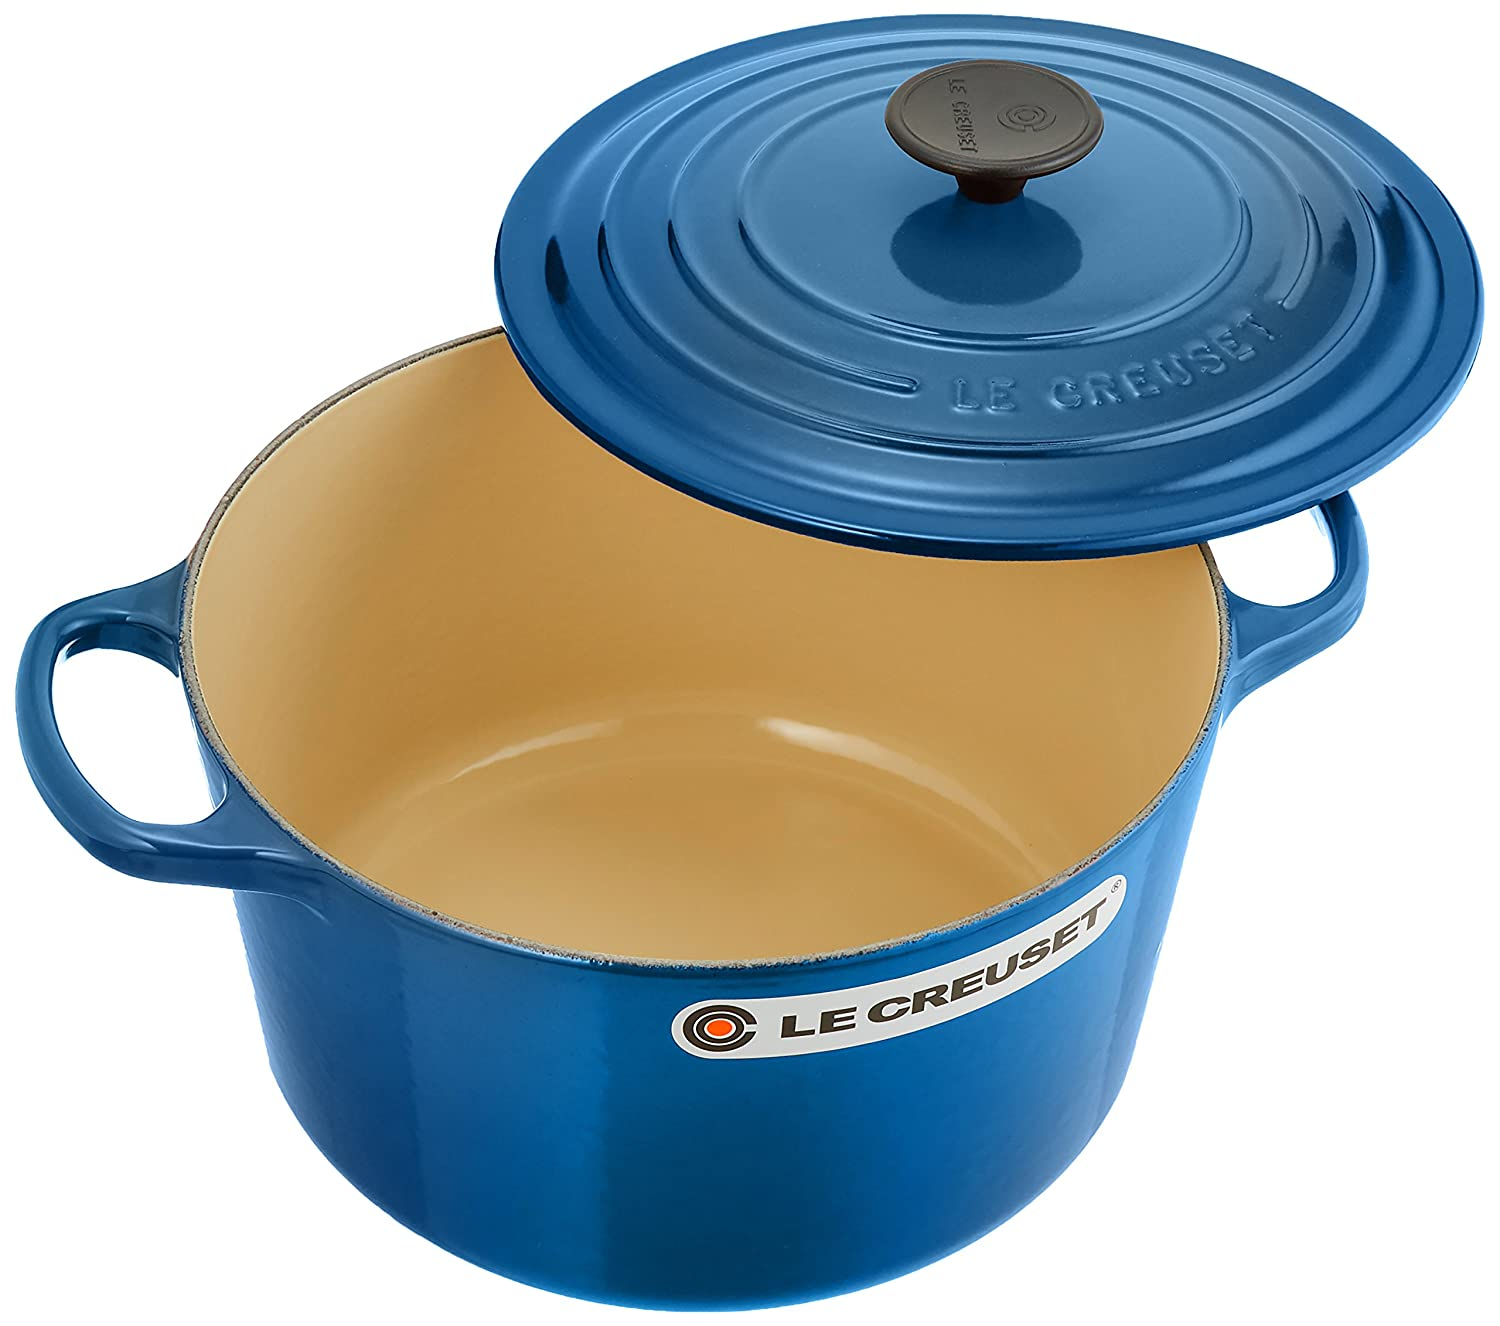 Le Creuset of America Cast Iron Cookware Round Dutch Oven, 5.25Qt, Marseille